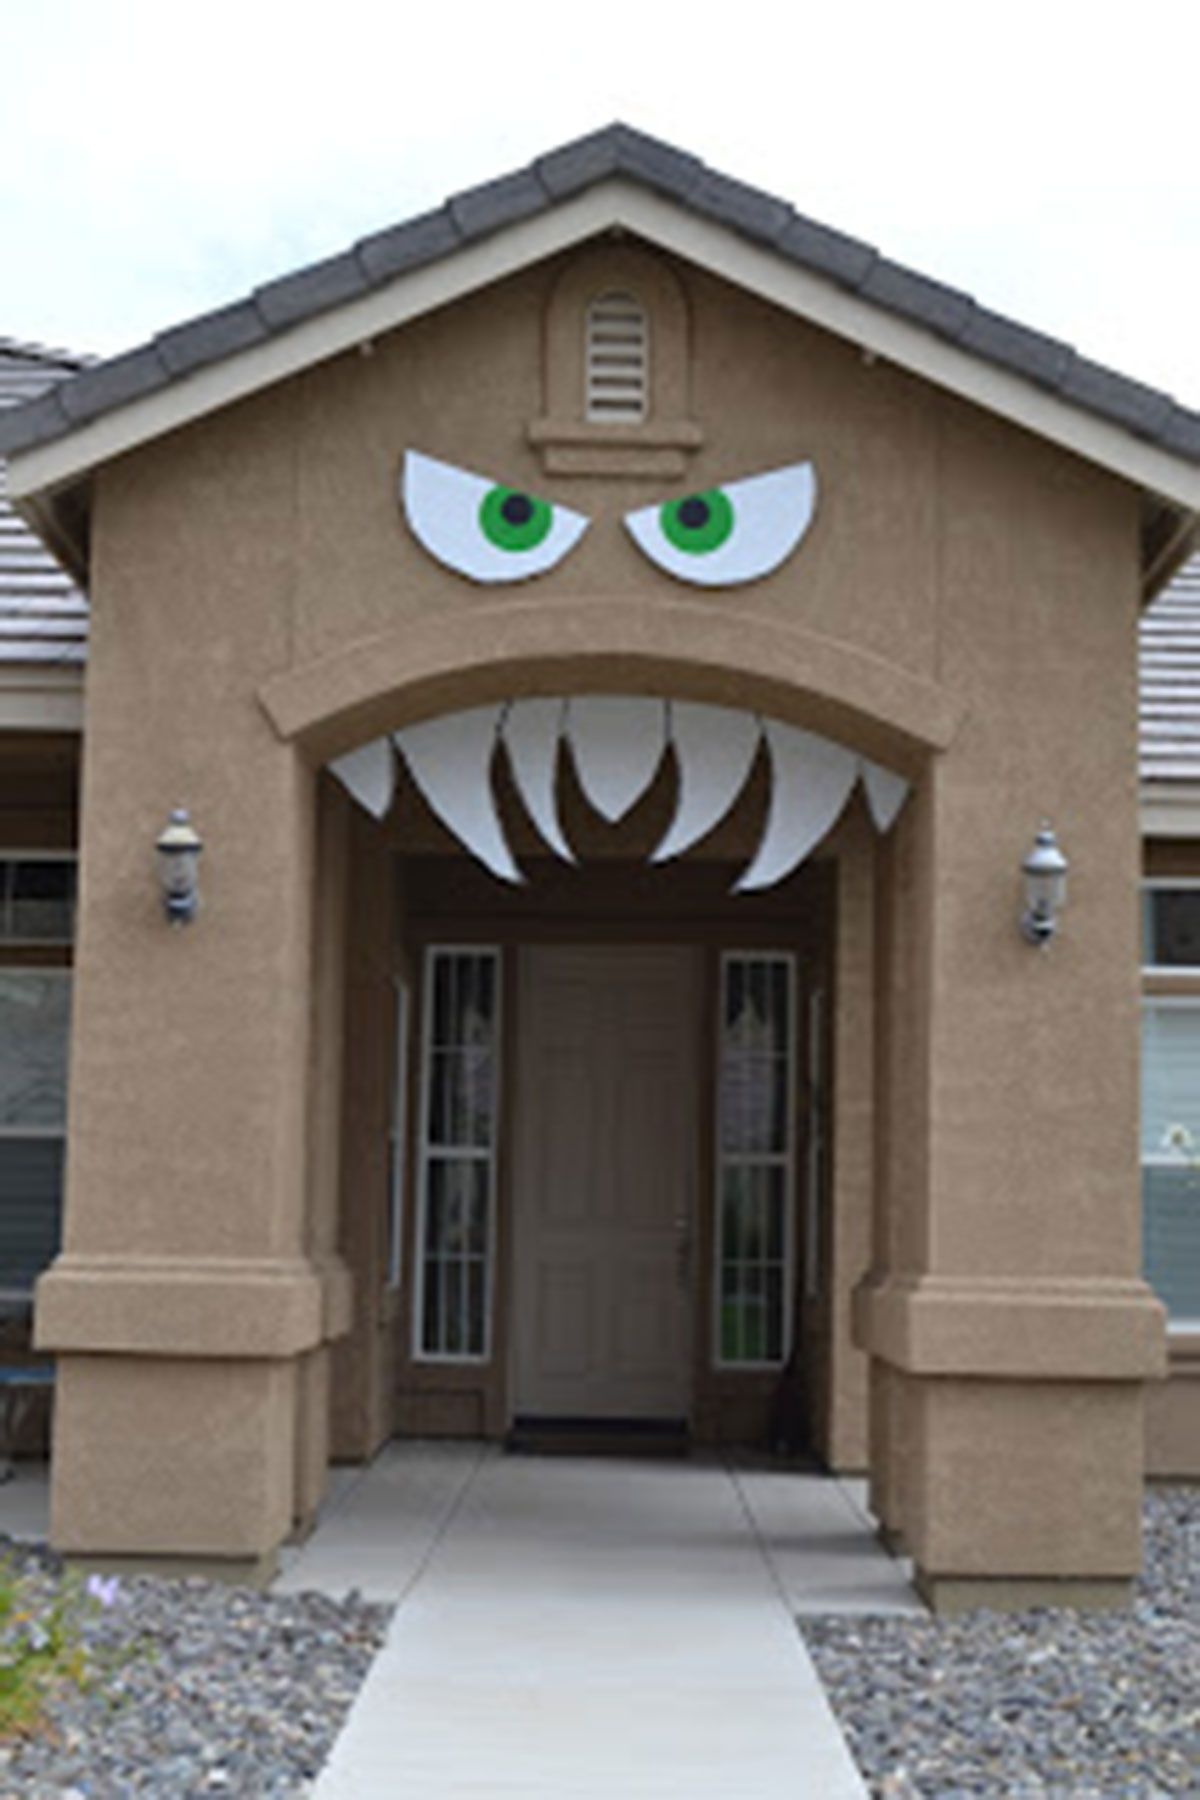 30+ Spooktacular Outdoor Halloween Decorations Monster house - diy outdoor halloween decorations